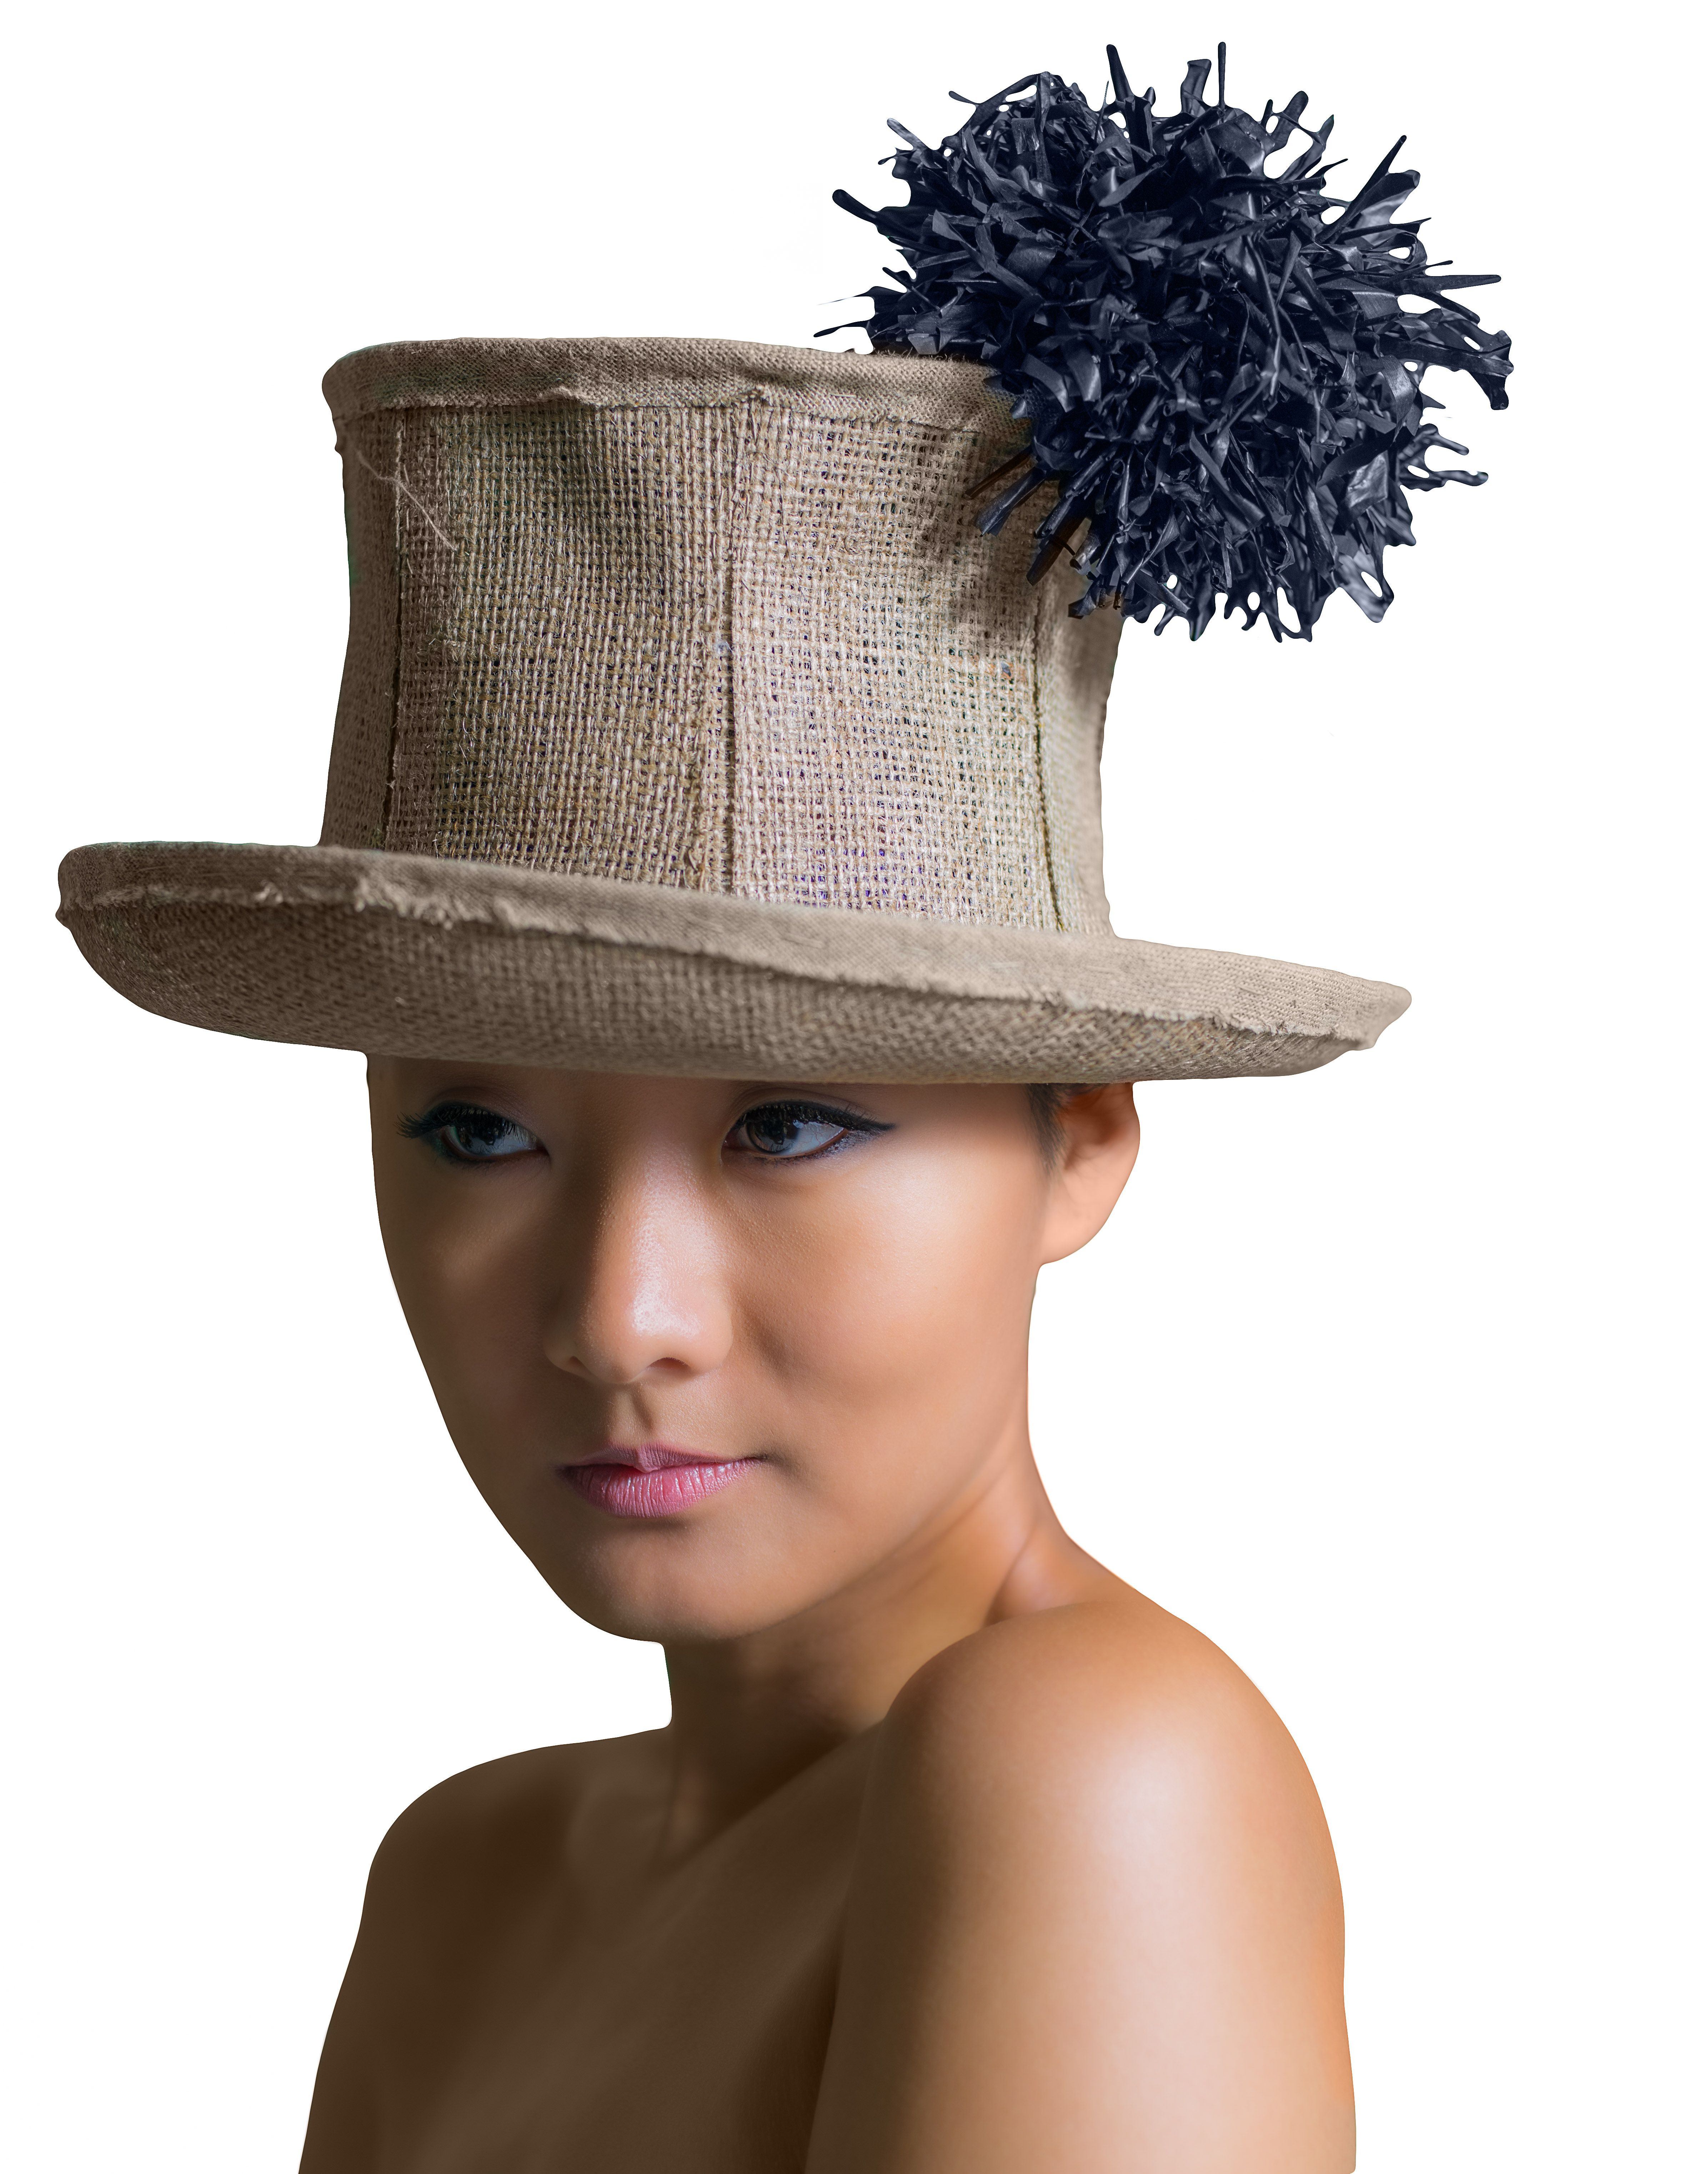 Fashion style How to fascinator a top hat wear for girls